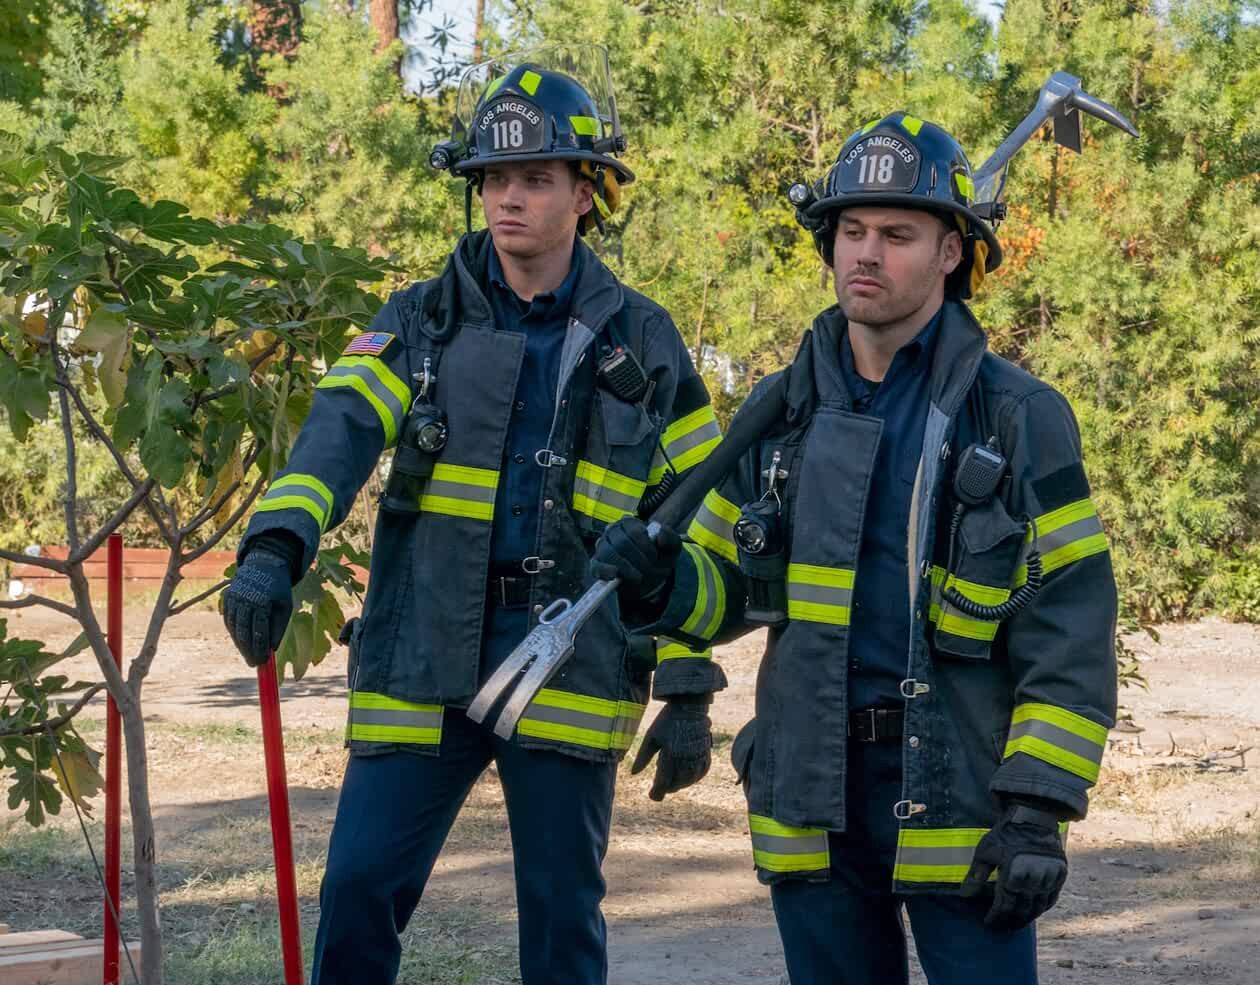 9-1-1 Season 3 Episode 12 update